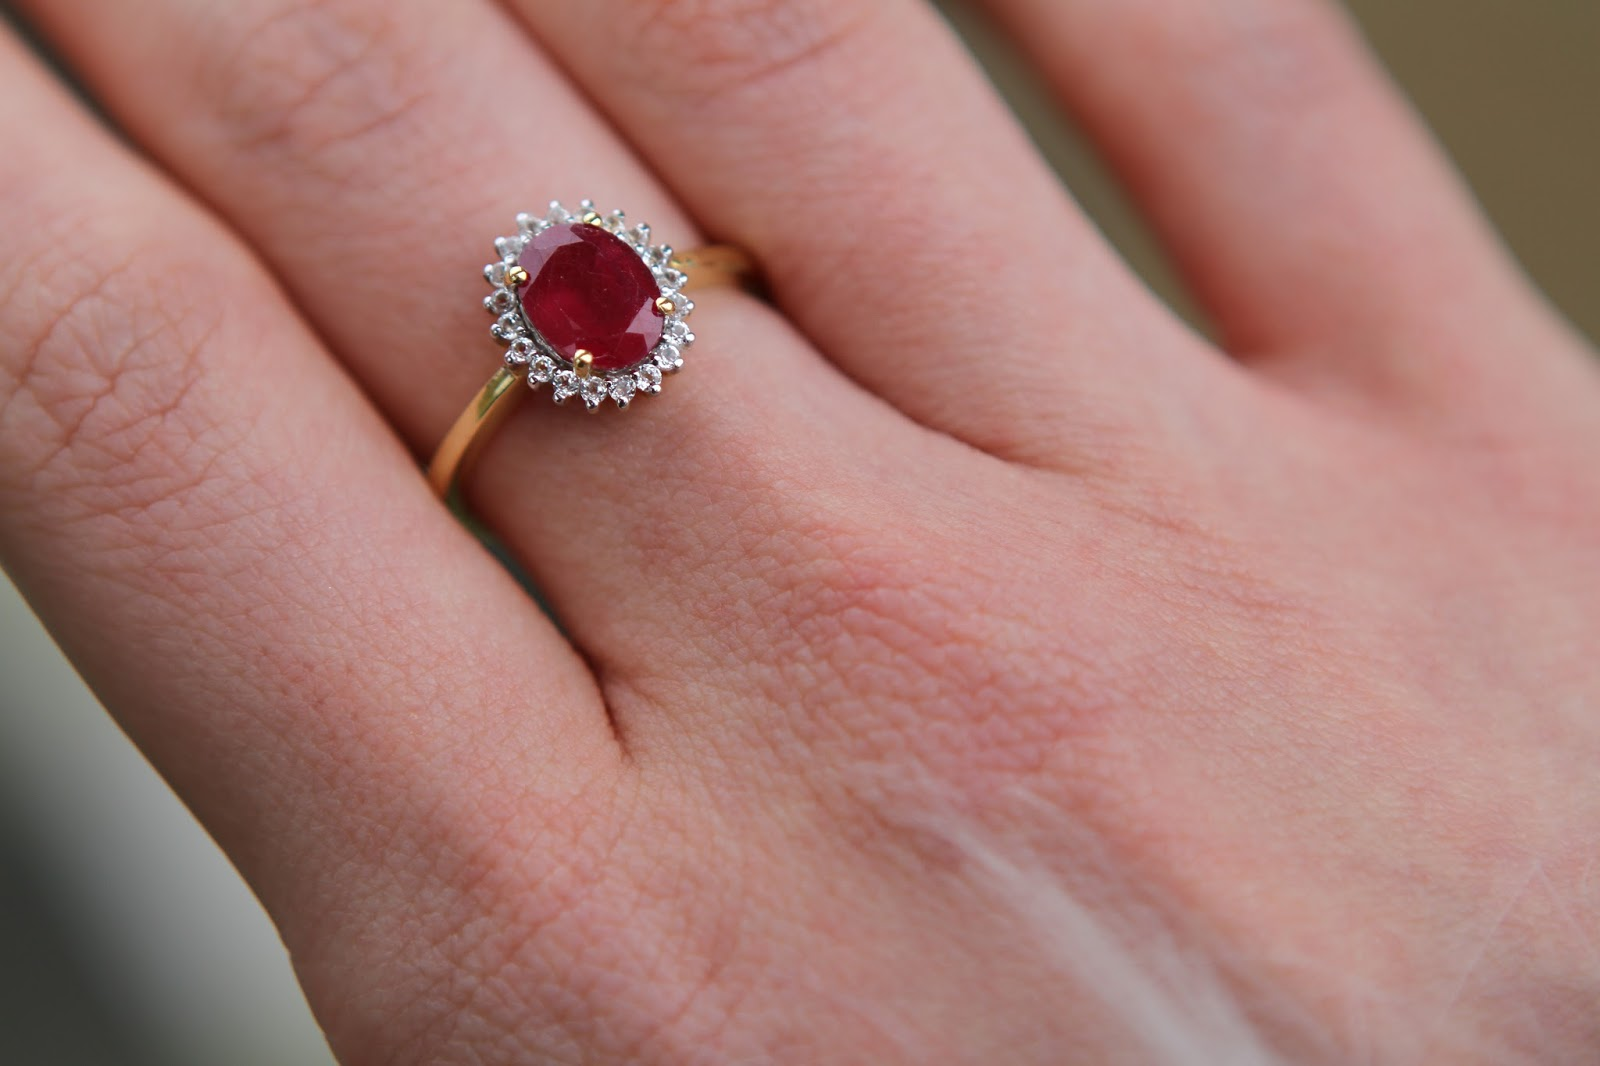 Gemporia thai ruby and white topaz